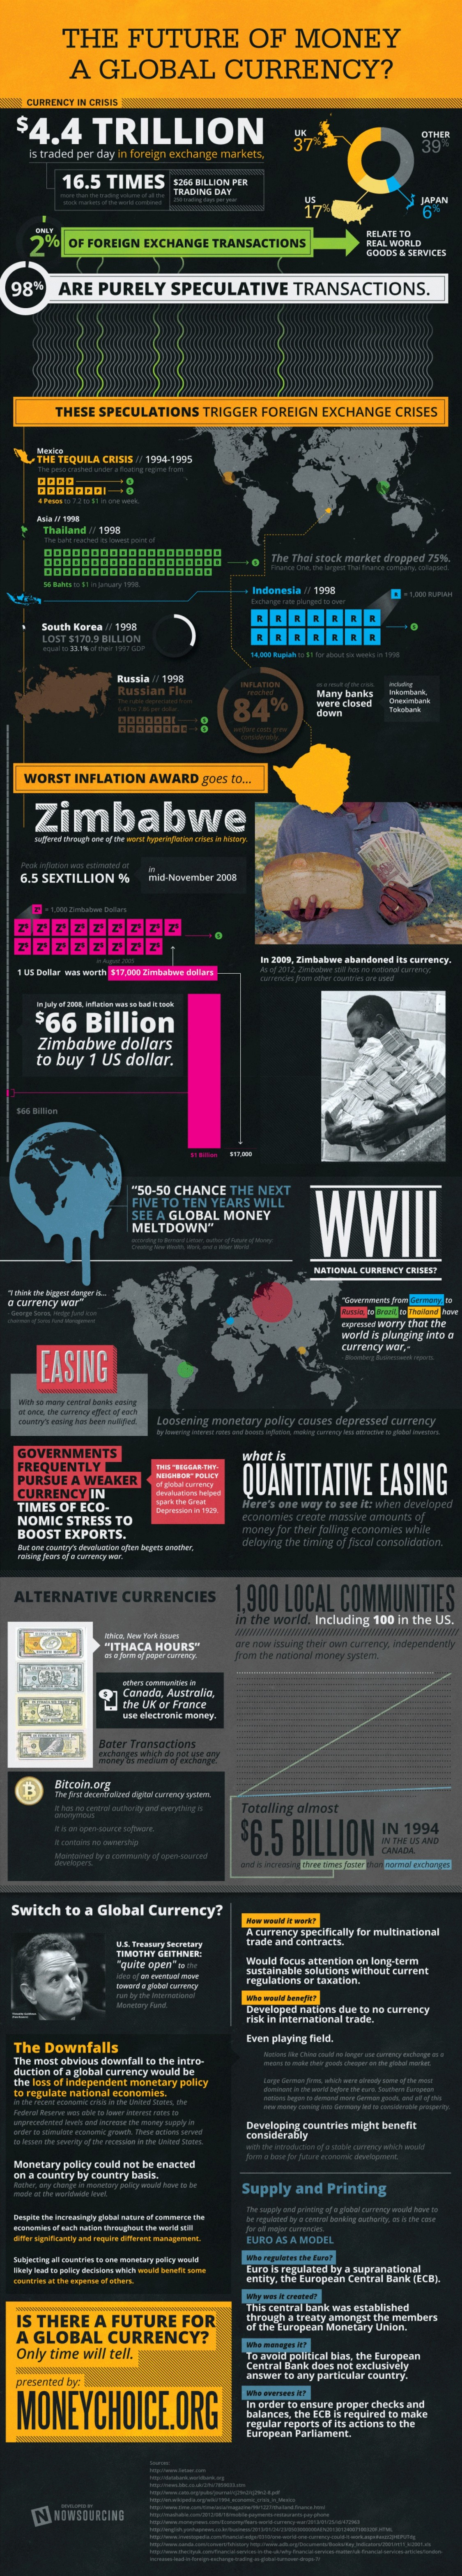 The future of money: a global currency?